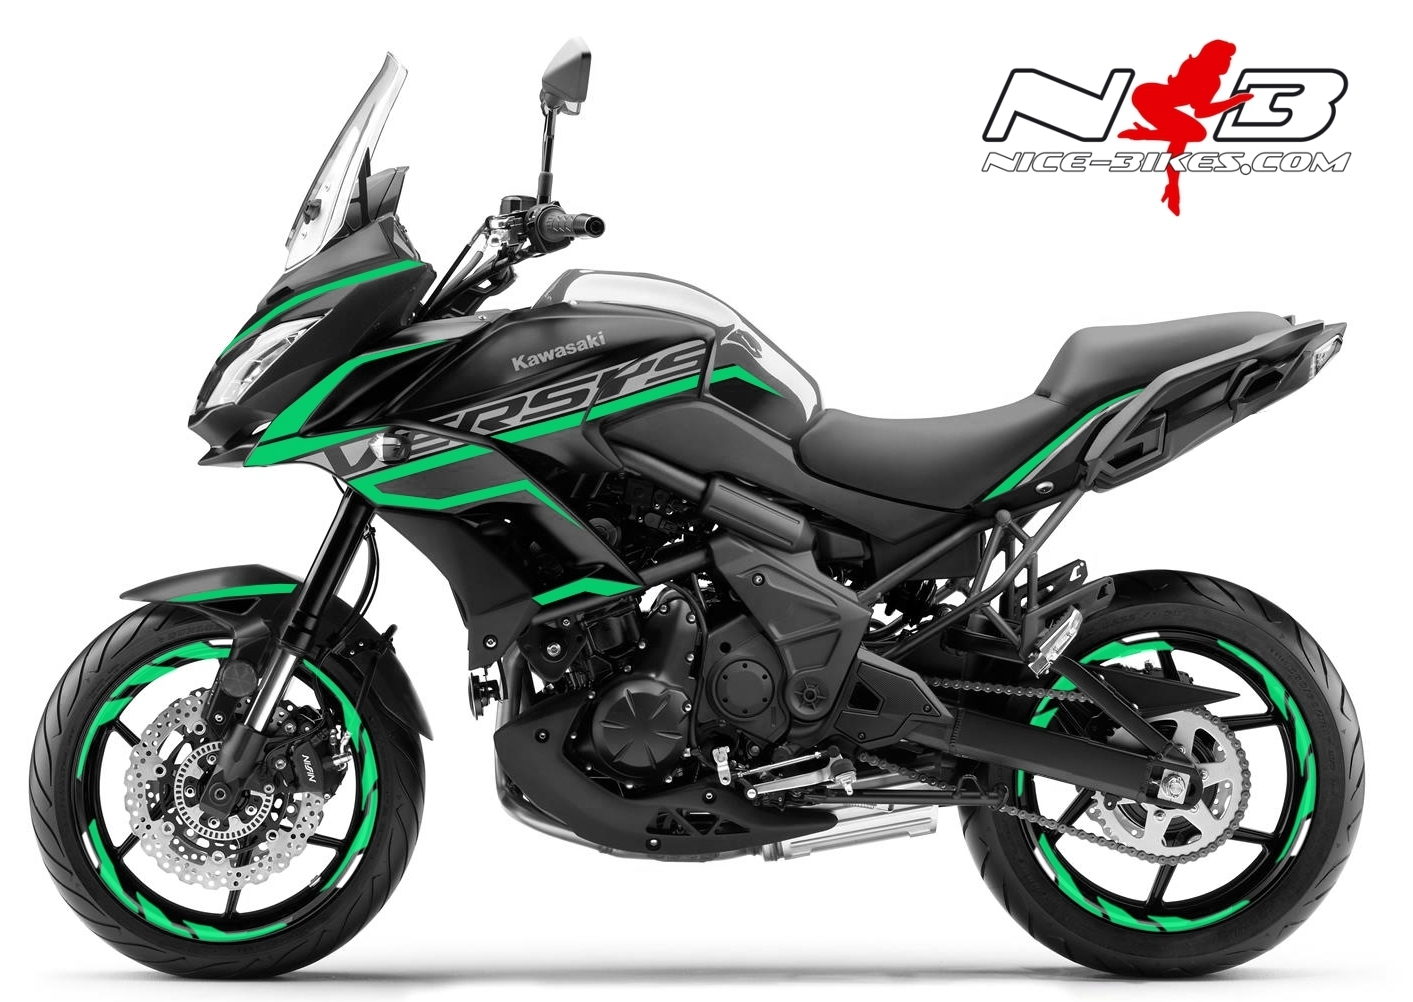 Foliendesign Kawasaki Versys 650 Bj. 2020 Mint Blue